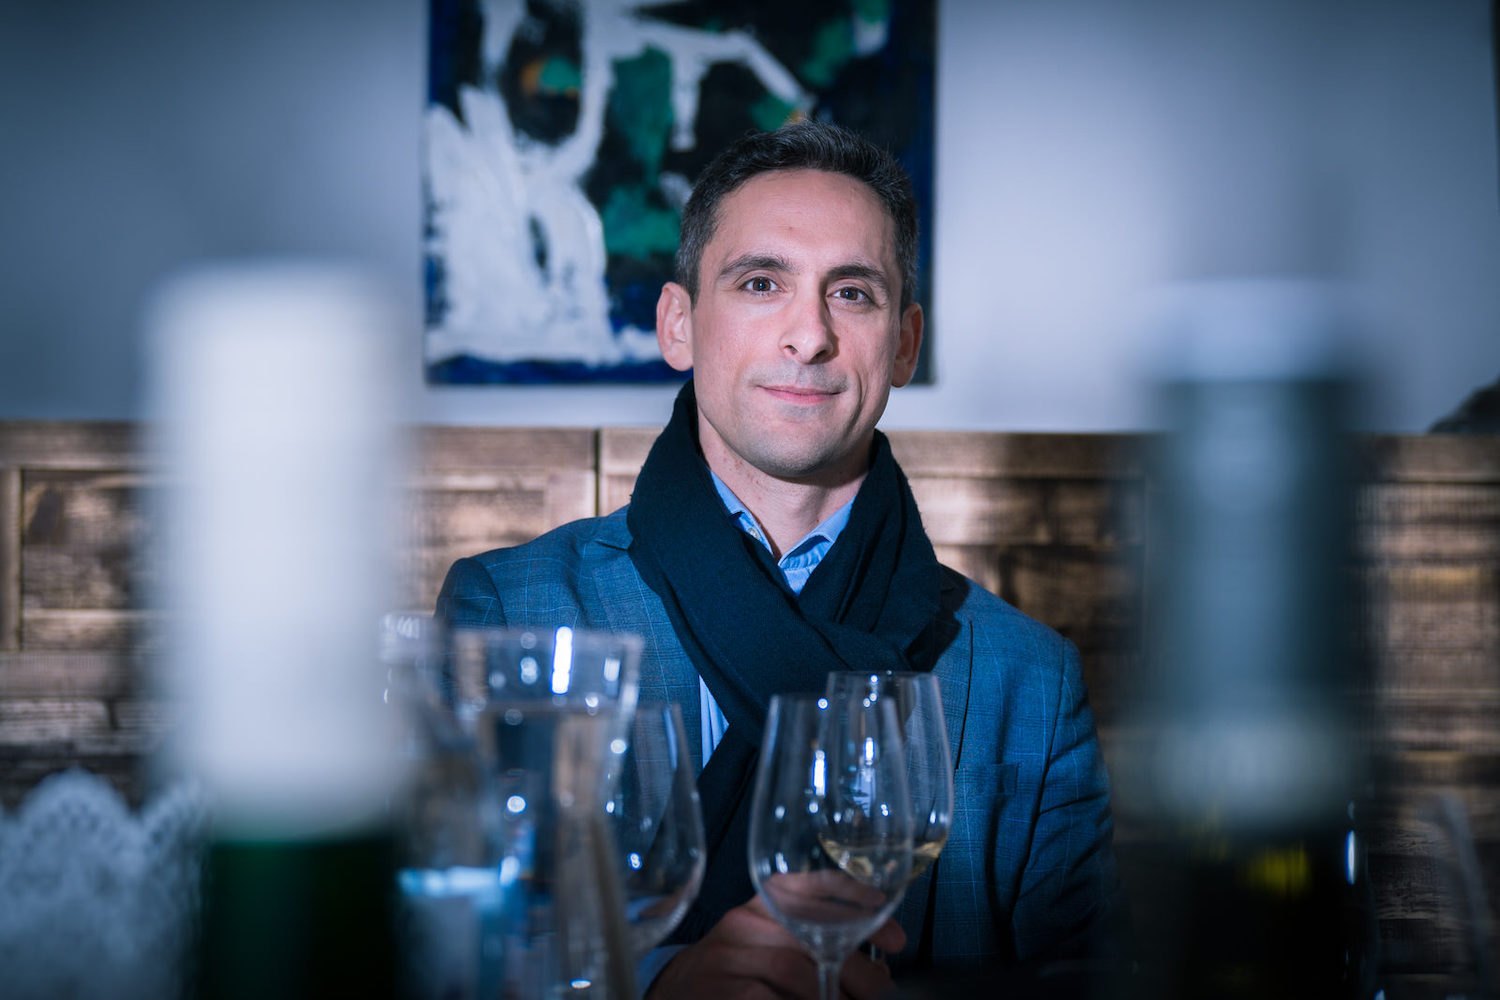 HELLO THERE!I'M STYLIANOS. - Your host for an exclusive wine cellar experience.